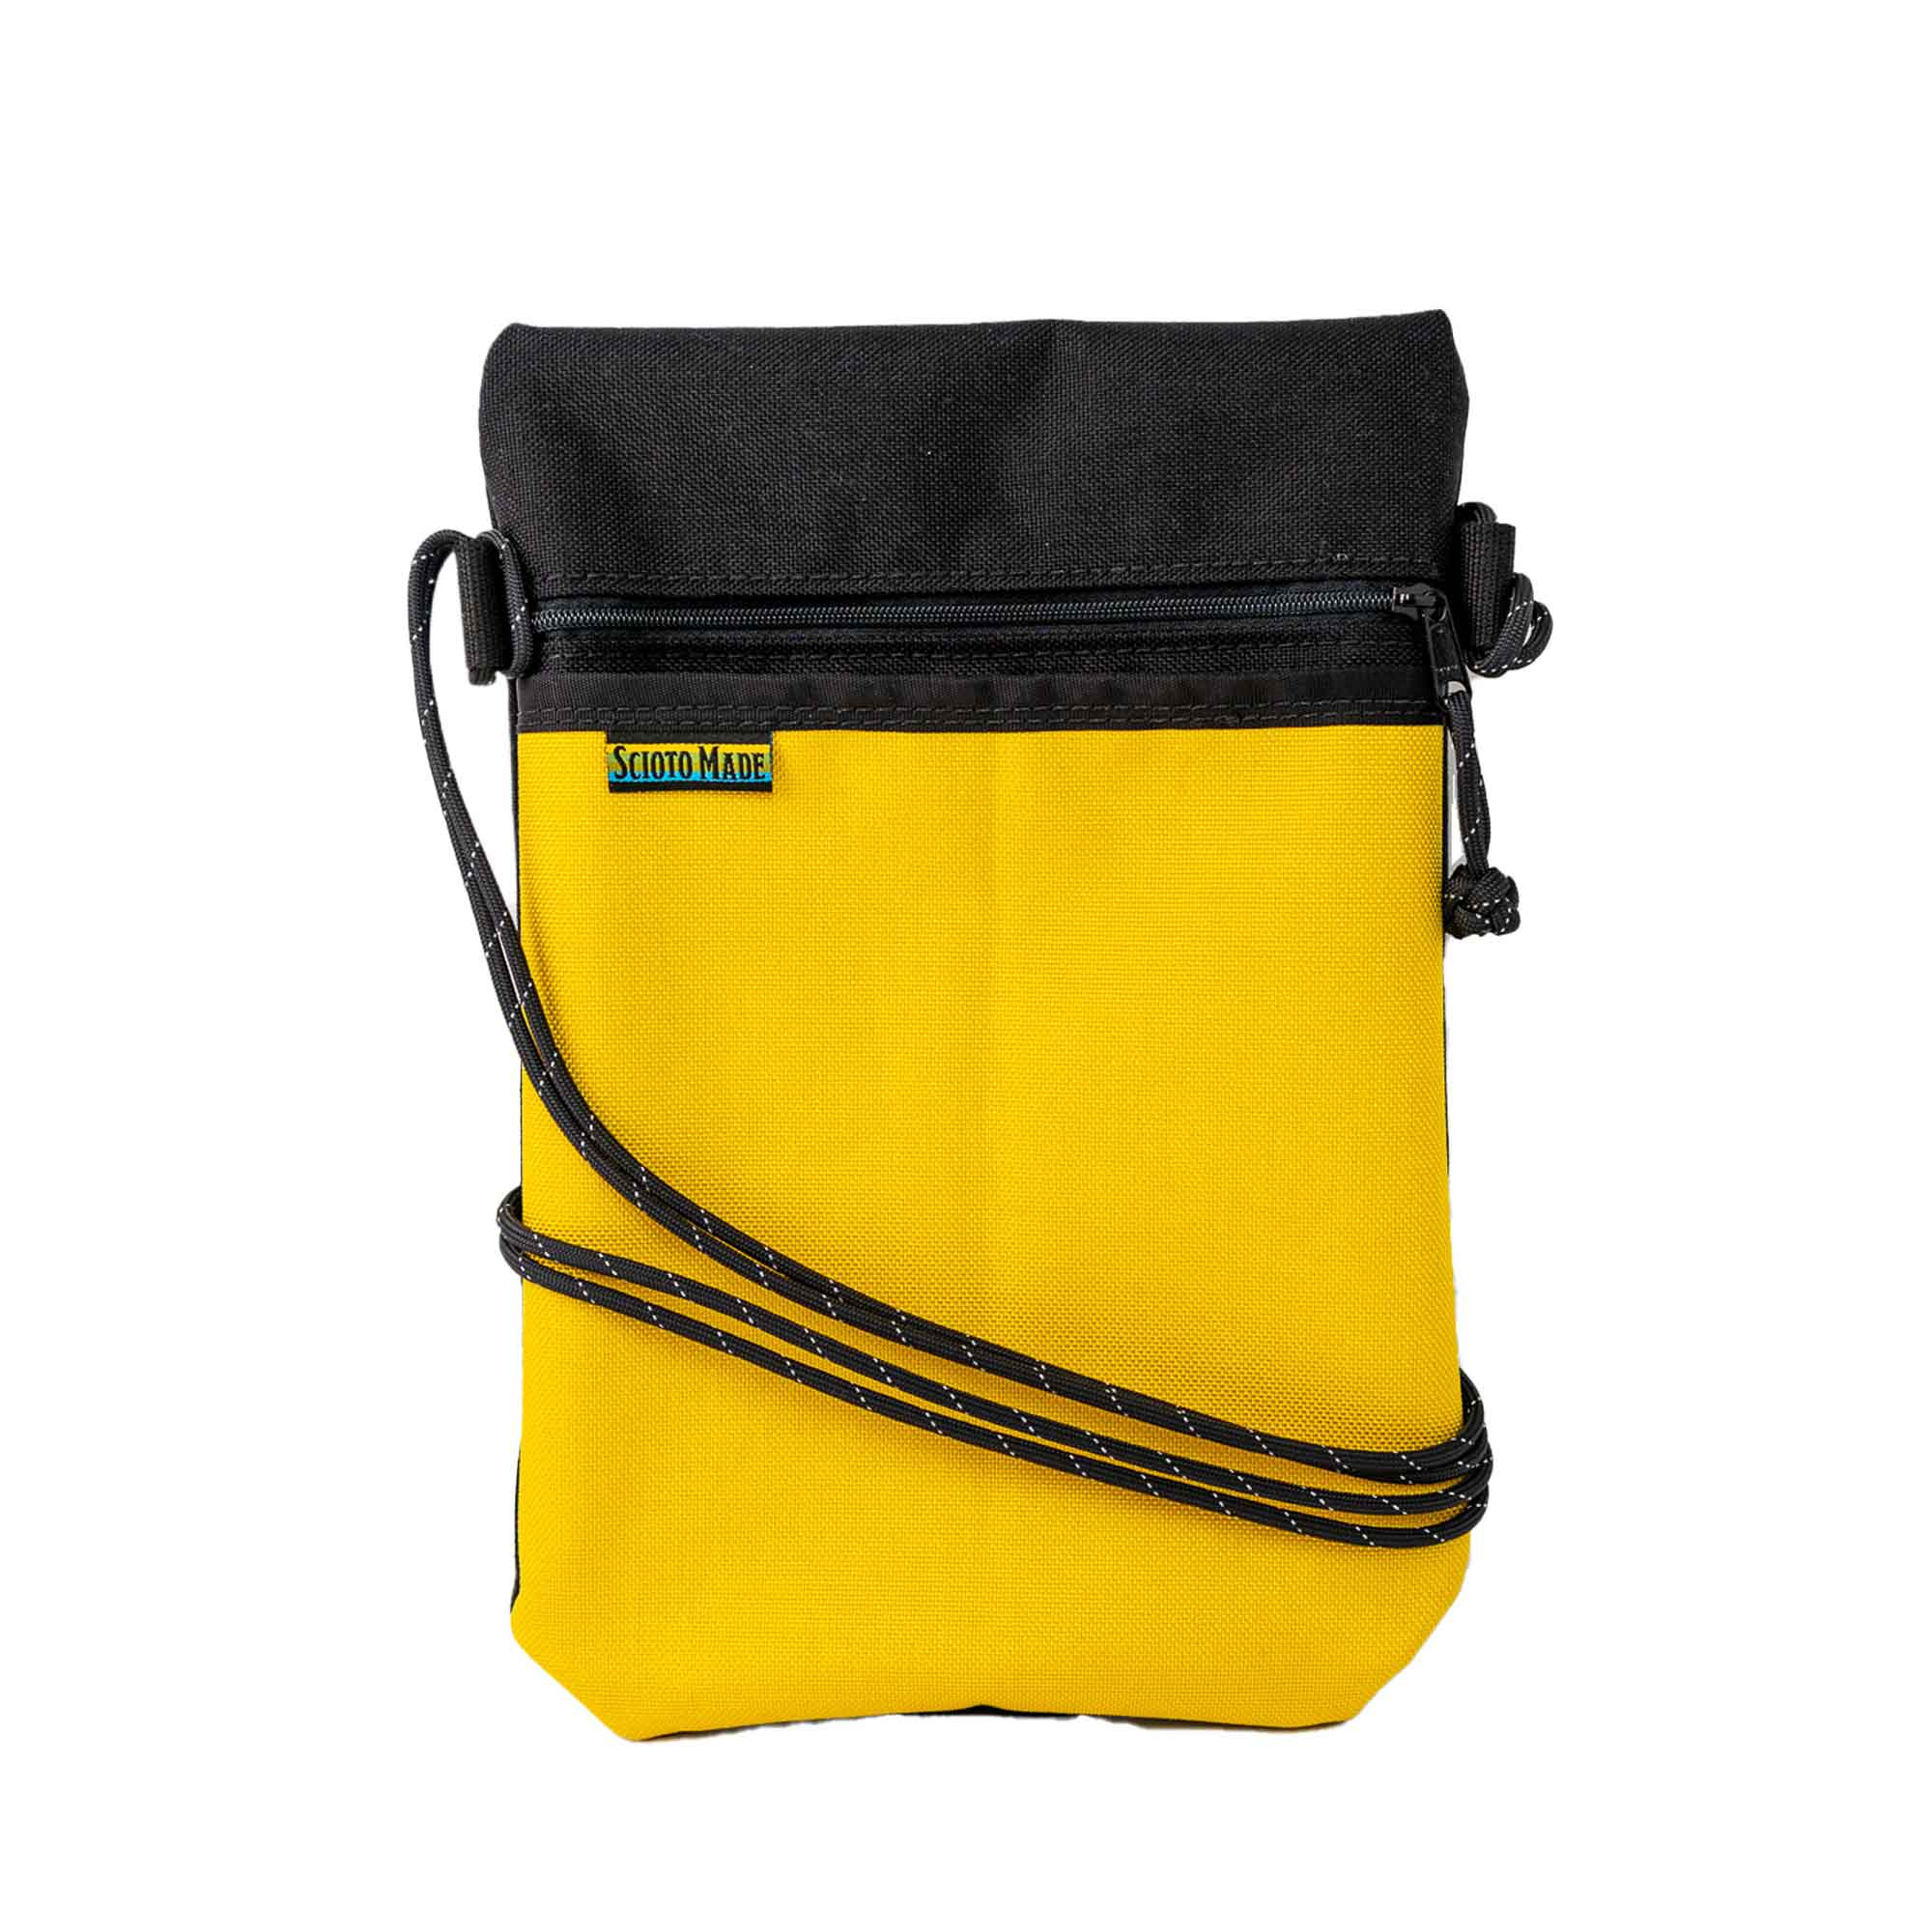 Scioto Made crossbody bag xover yellow black front view 01